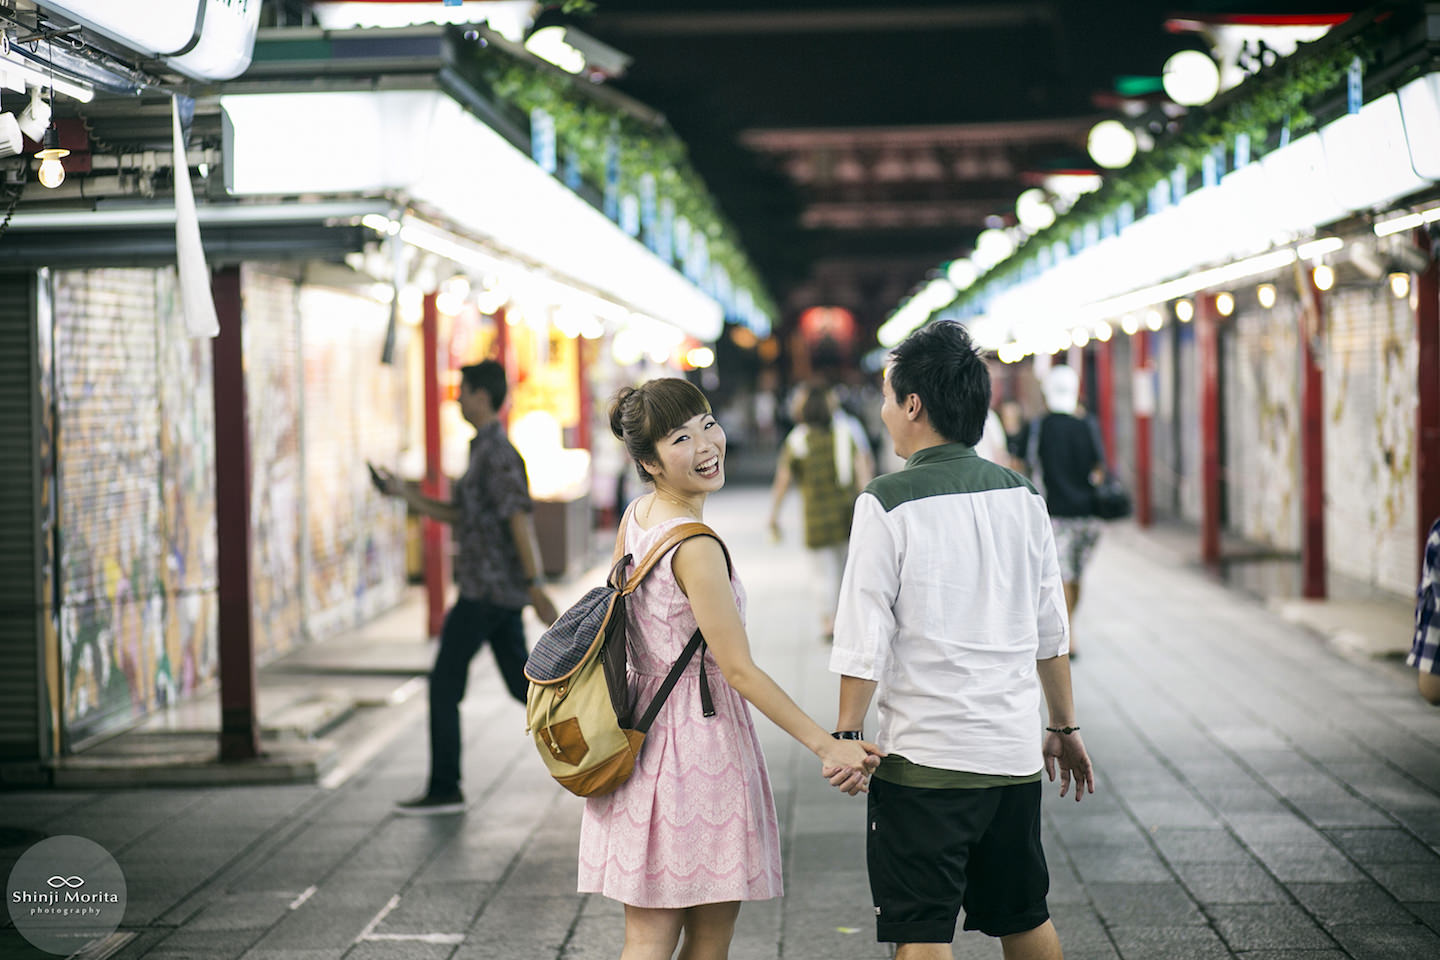 A happy couple walking around Nakamise street in Asakusa, Tokyo